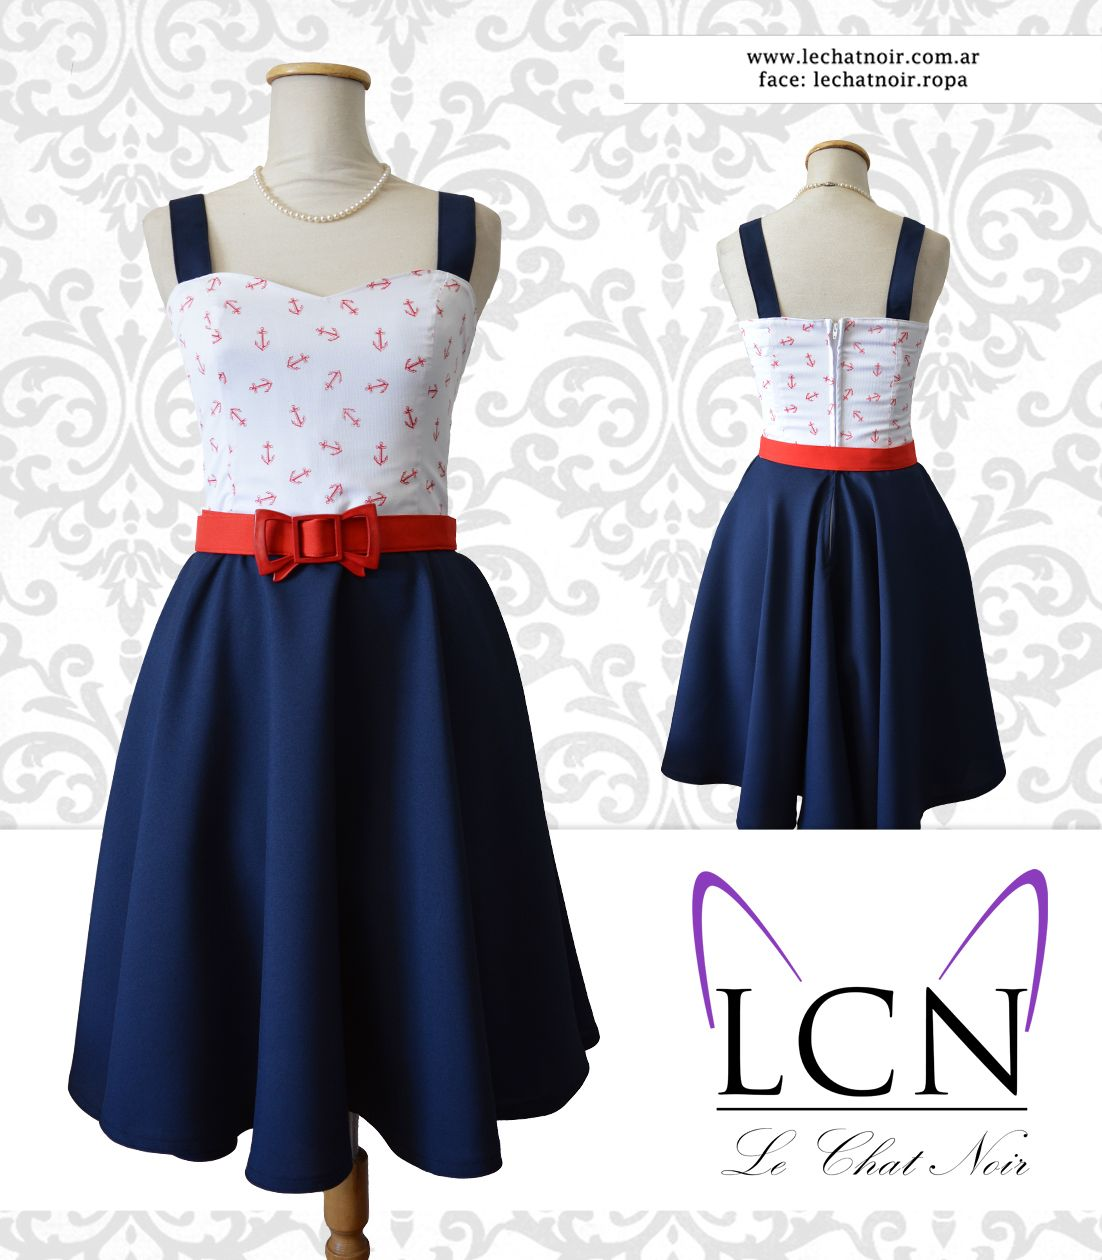 Vestido Pin Up, top blanco con anclas rojas y falda plato azul  #vestidopinup #estilopinup #vintage #retro #vintagestyle #rockabilly #anchor #pinup #pinupstyle #pinupfashion #retrofashion #pinupgirl #fashion #dress #navy #navystyle #sailorlook